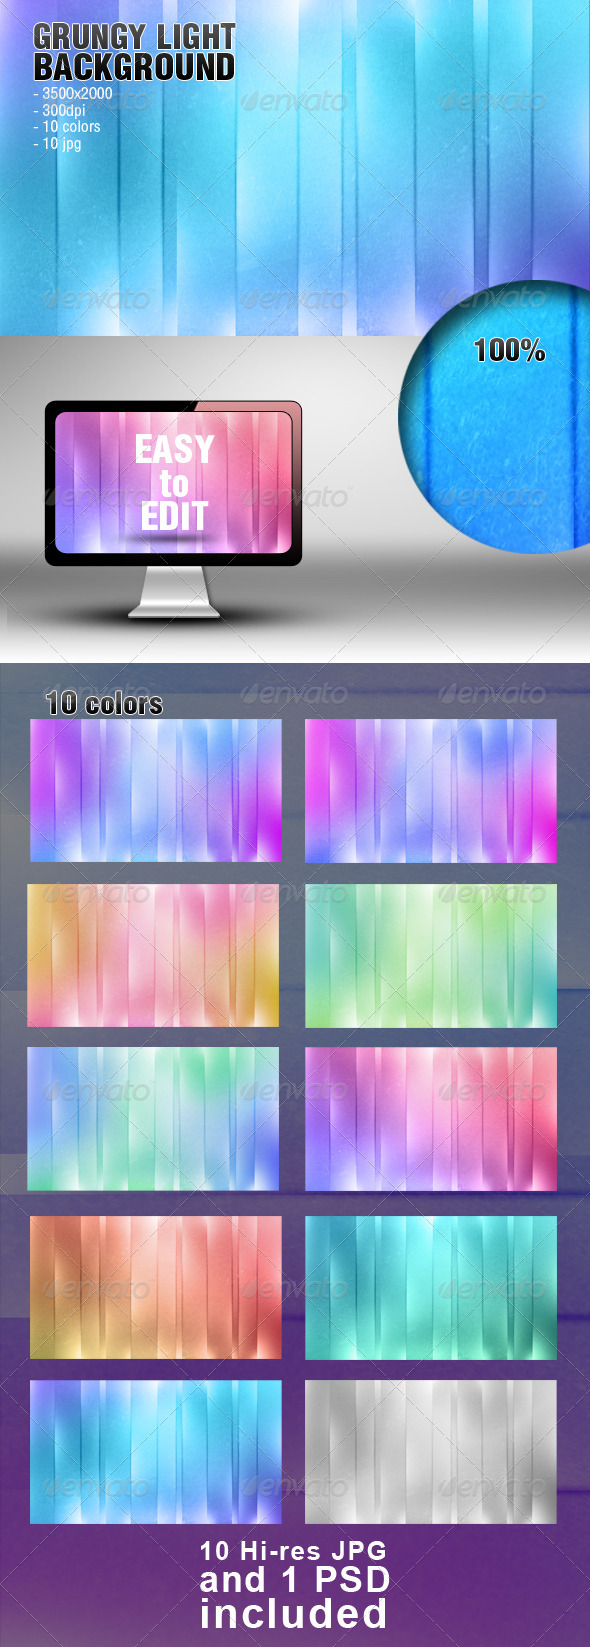 Grungy Light Background - Abstract Backgrounds